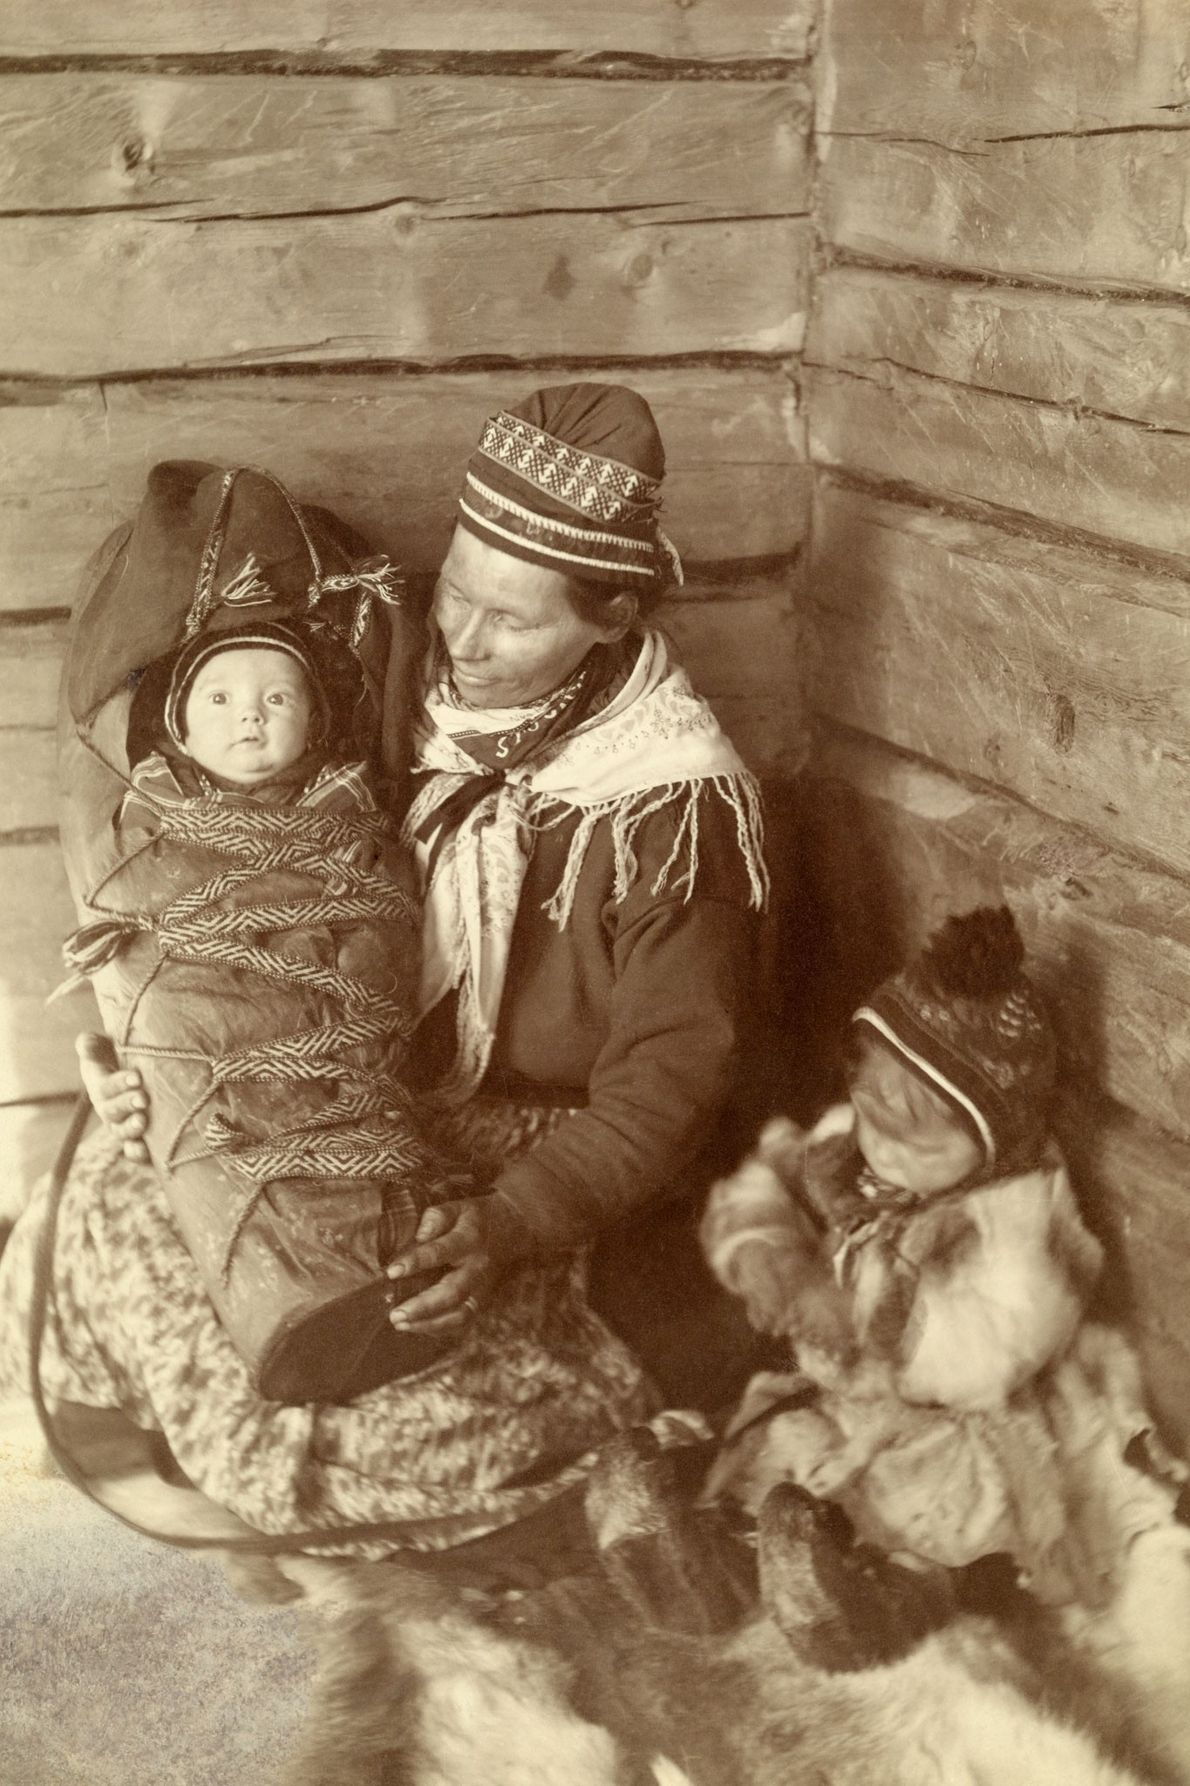 A Sami woman, toddler, and infant in Lapland, Finland, sit on pelts that soften their surroundings ...